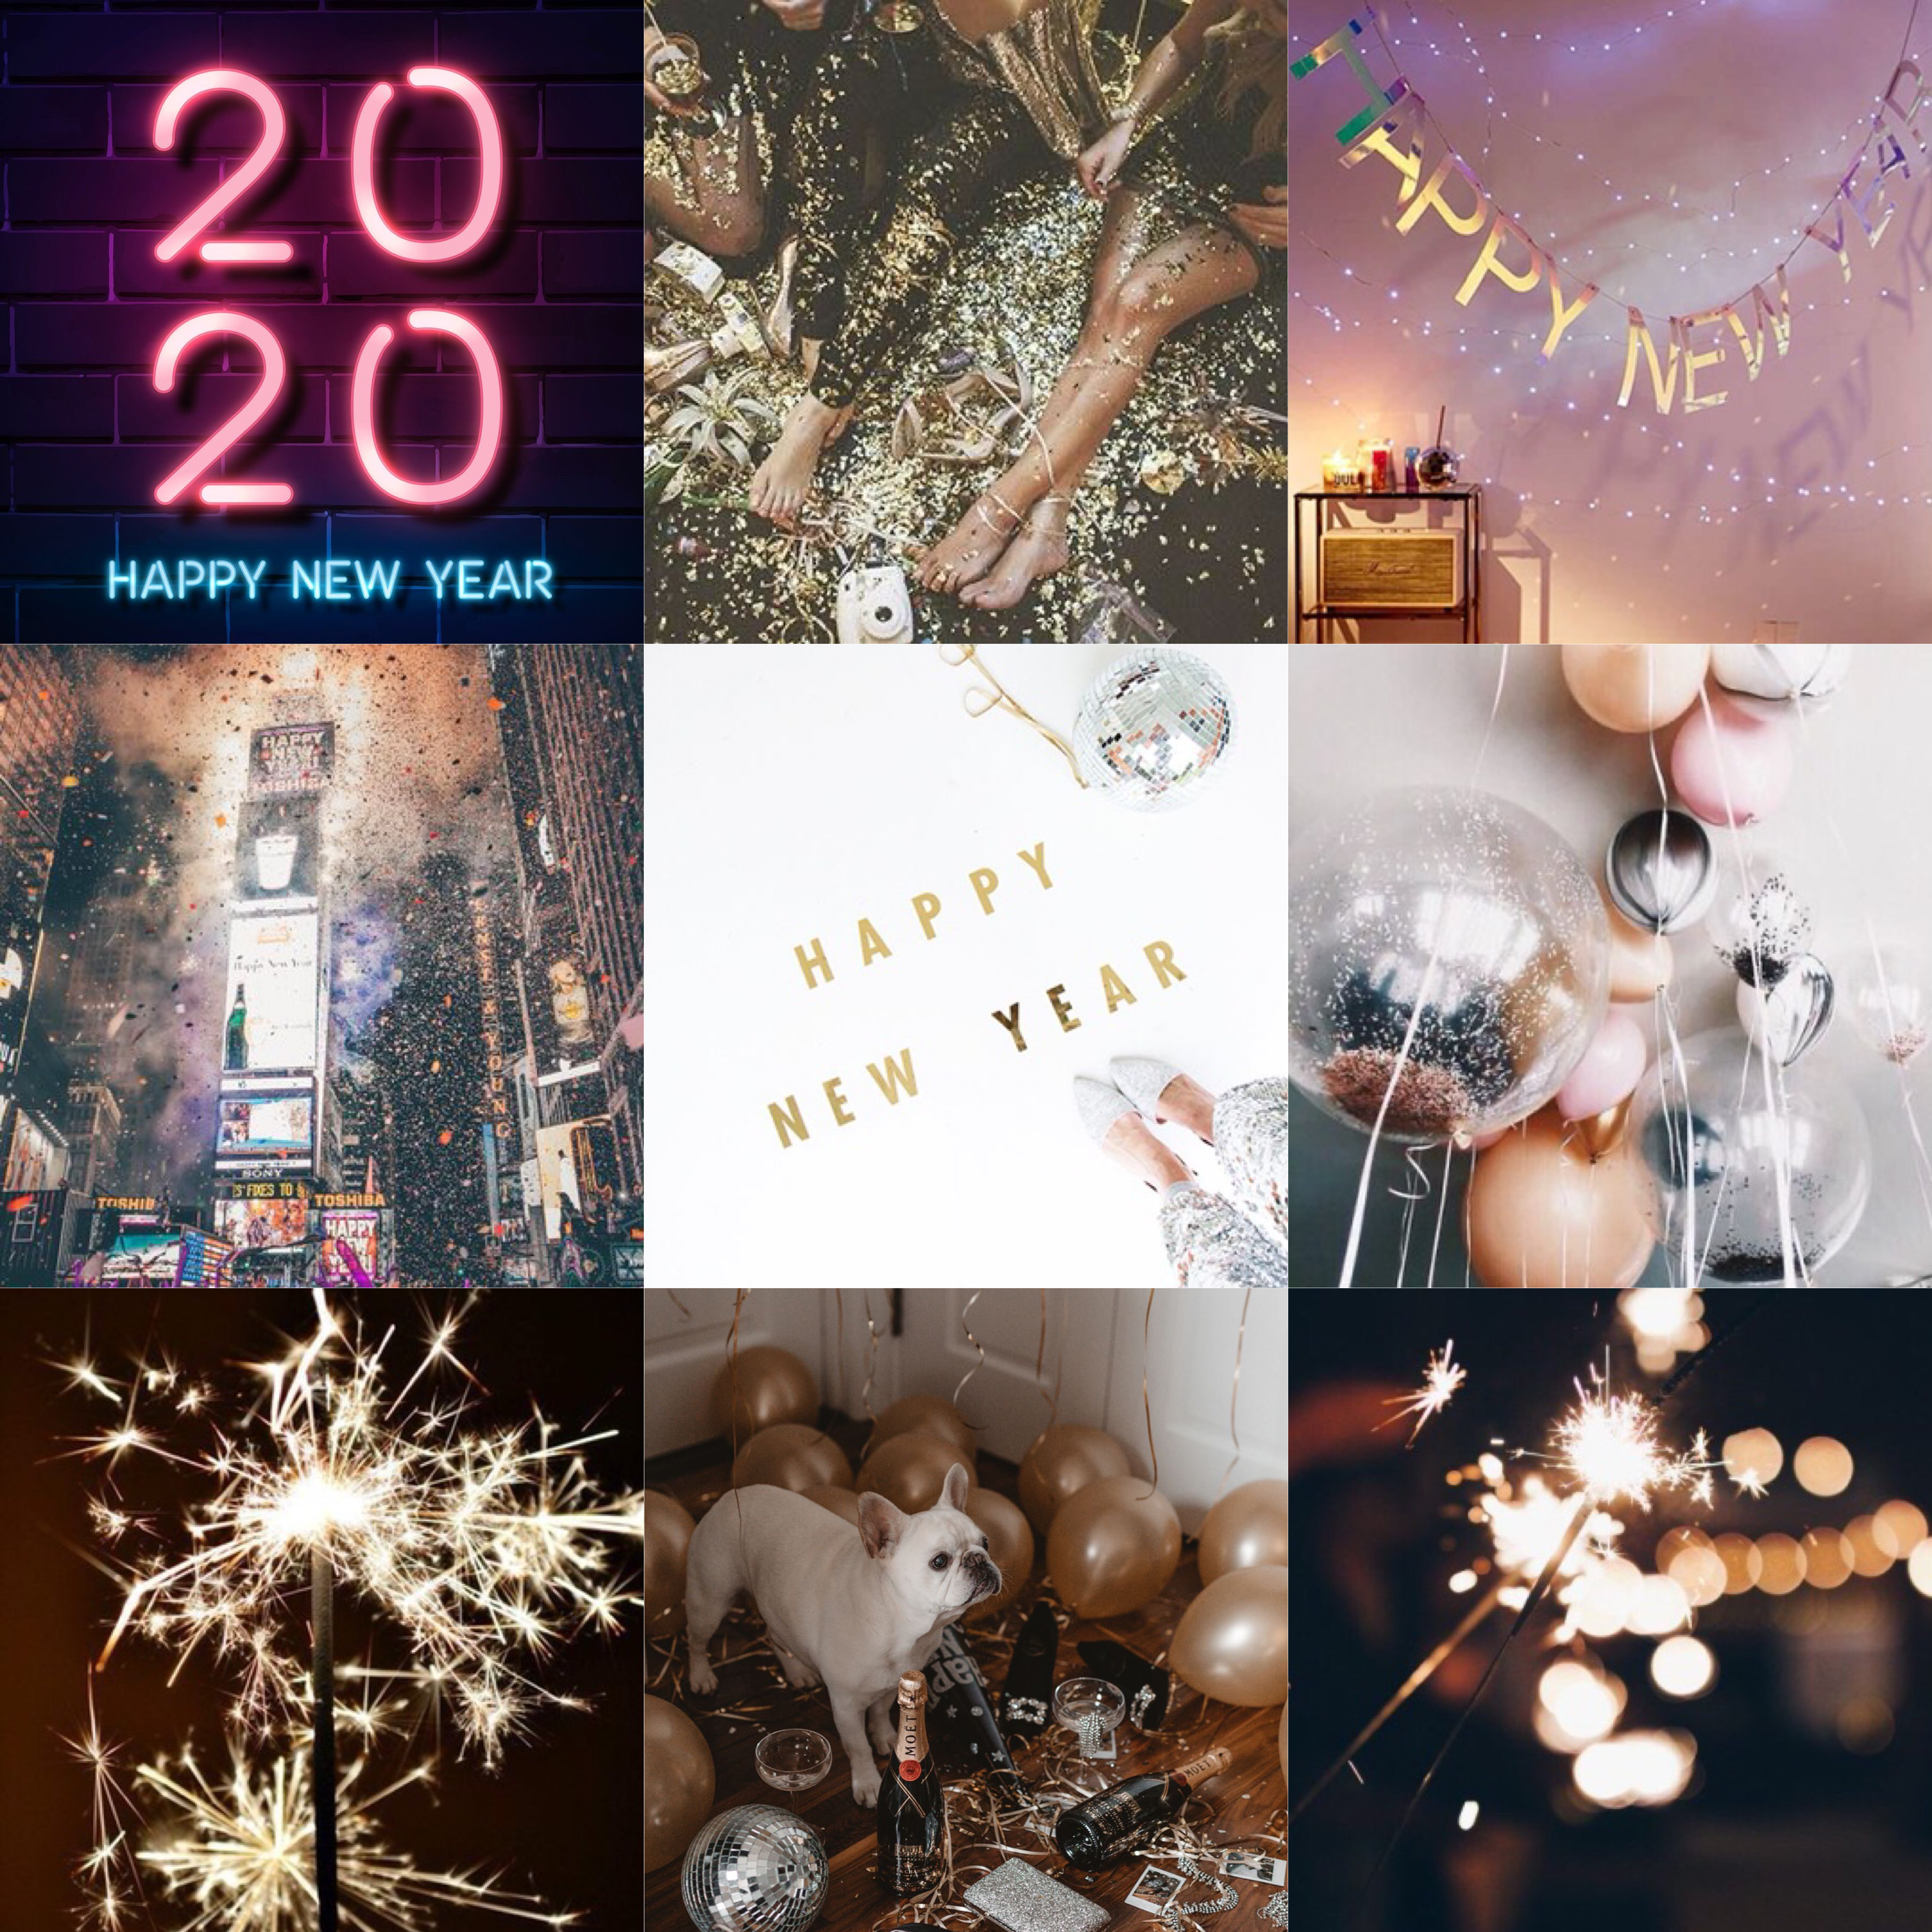 New Year's Aesthetic | Happy year, Table decorations, Decor